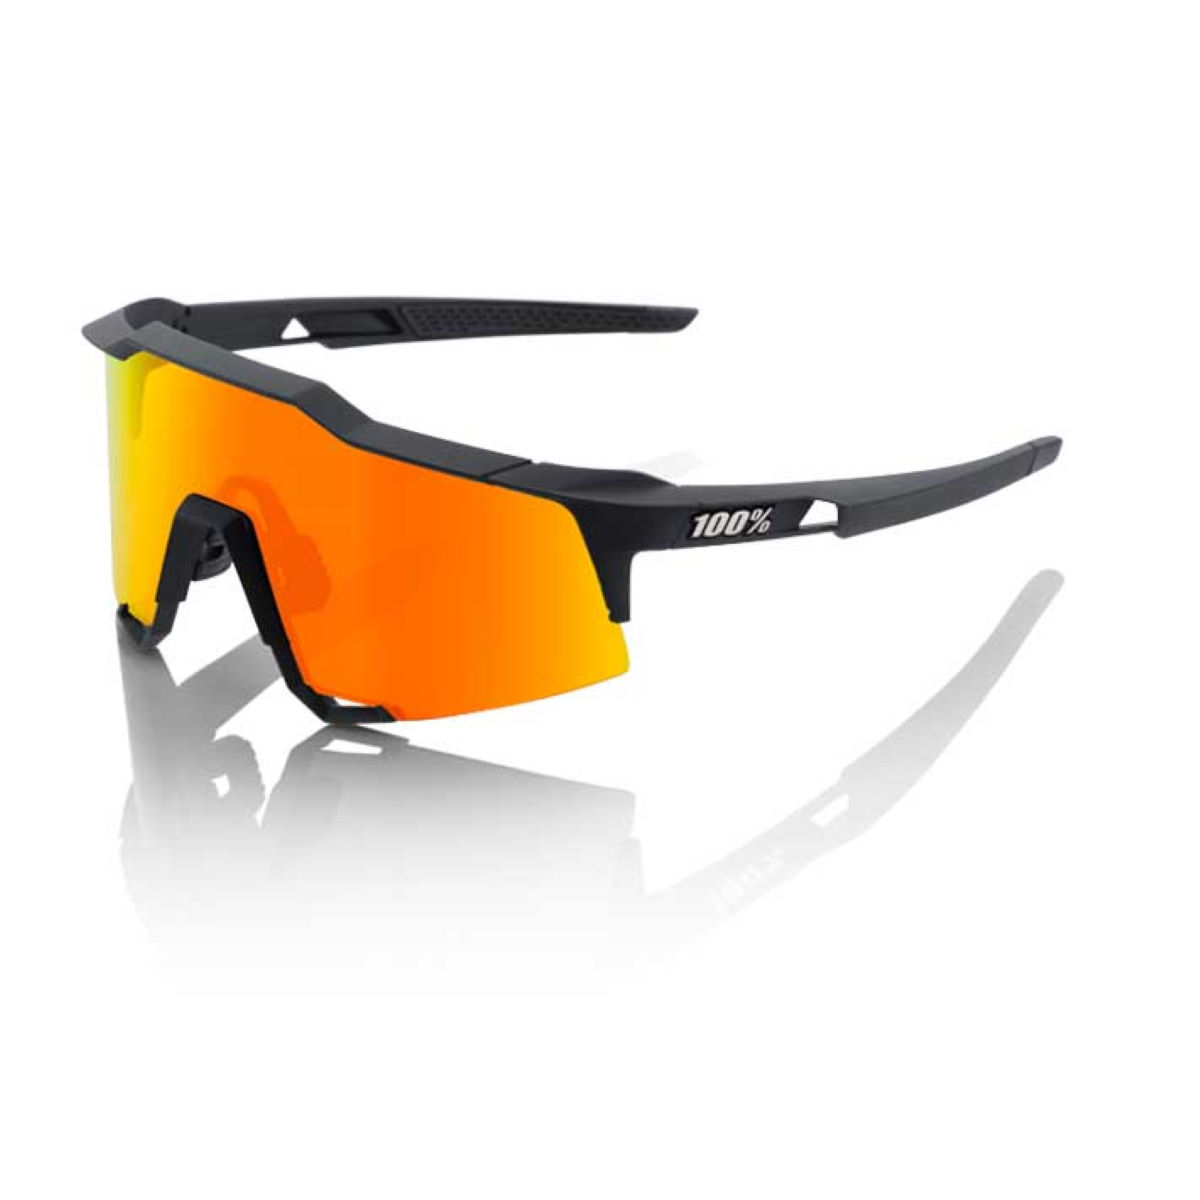 Gafas de sol 100% Speedcraft Tall (lente HD Red Multilayer Mirror) - Gafas de sol